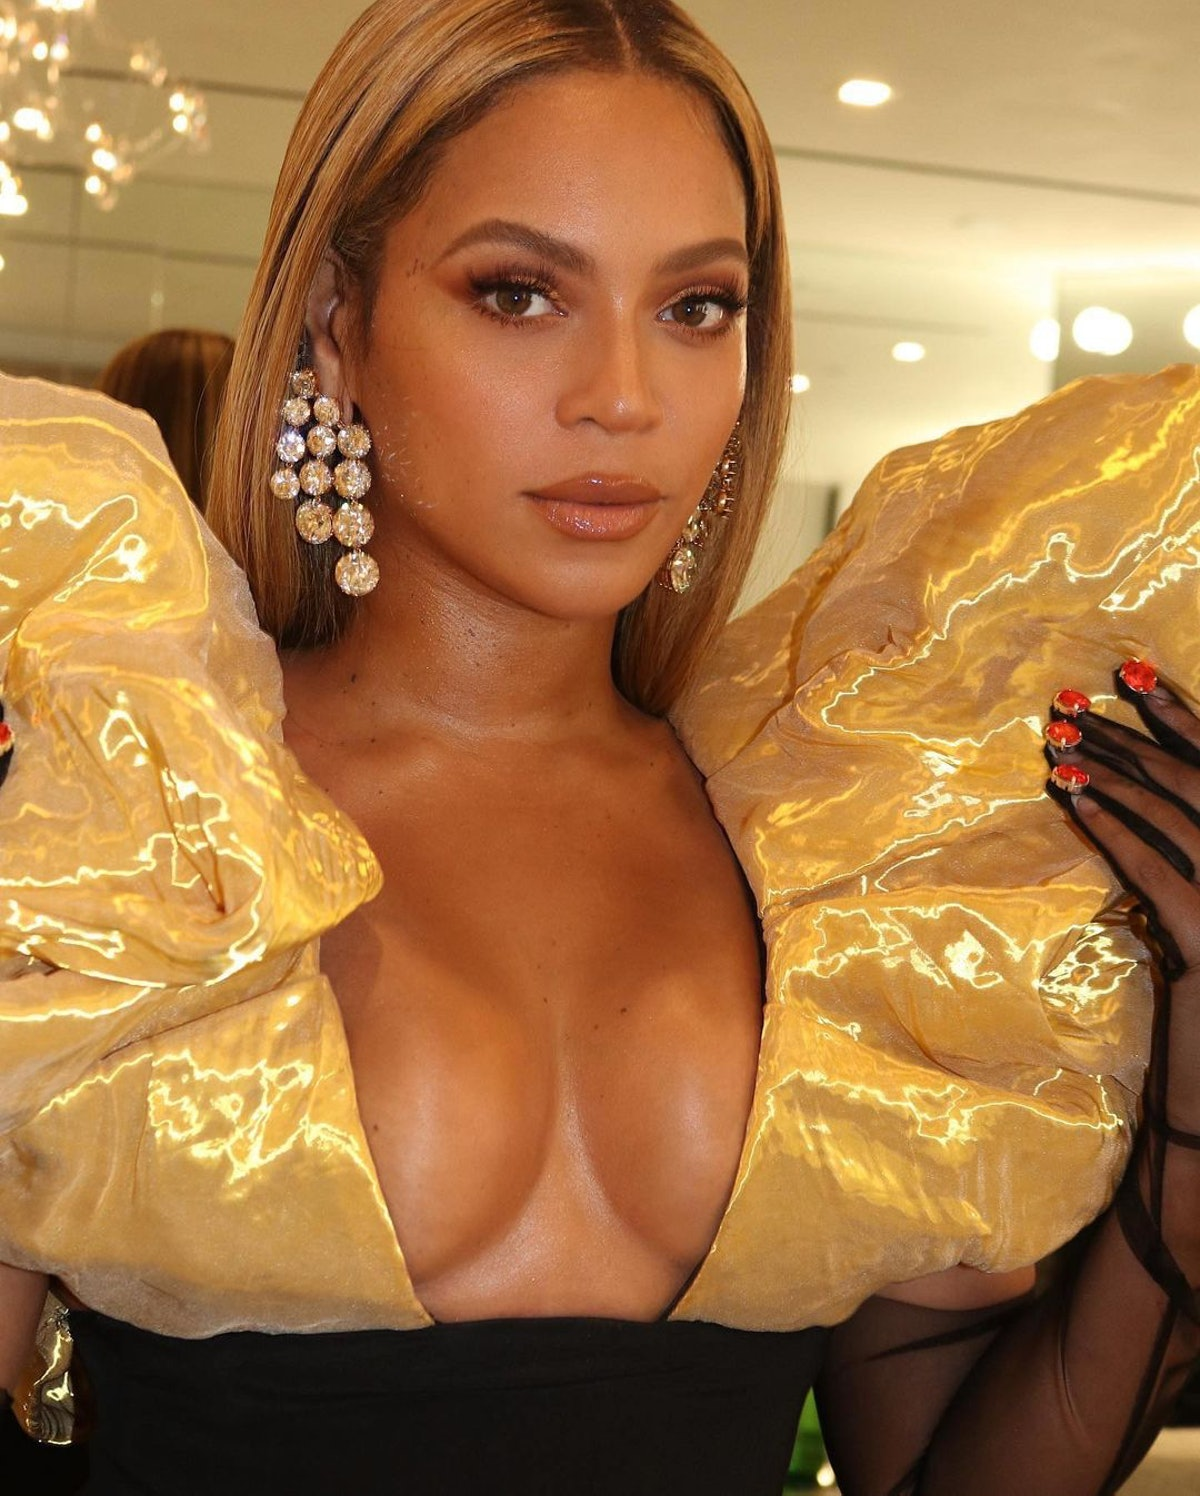 Beyoncé in gold dress and gloves selfie